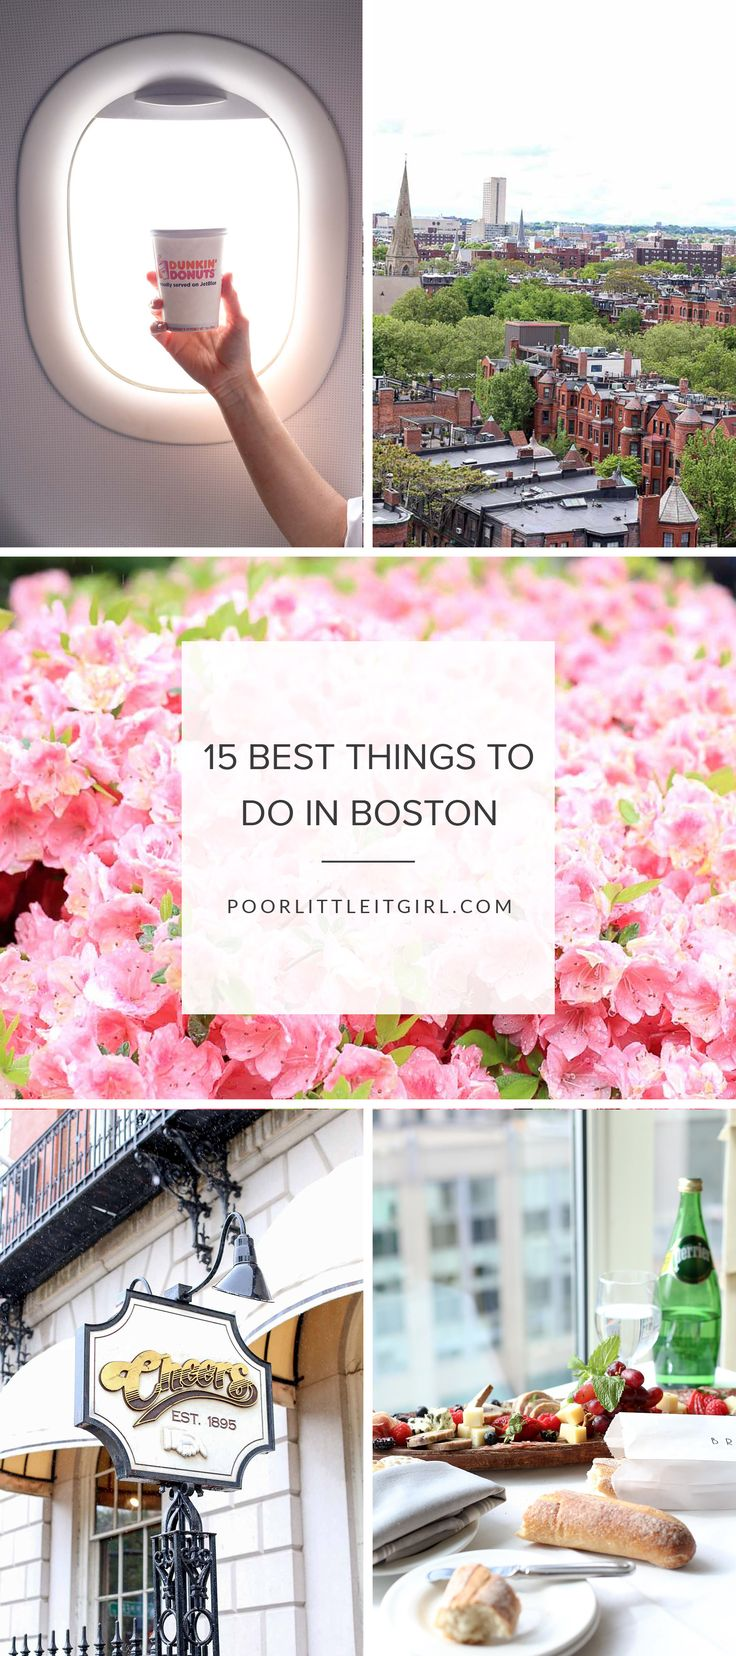 The 15 Best Things To Do In Boston - Travel Guide - Poor Little It Girl